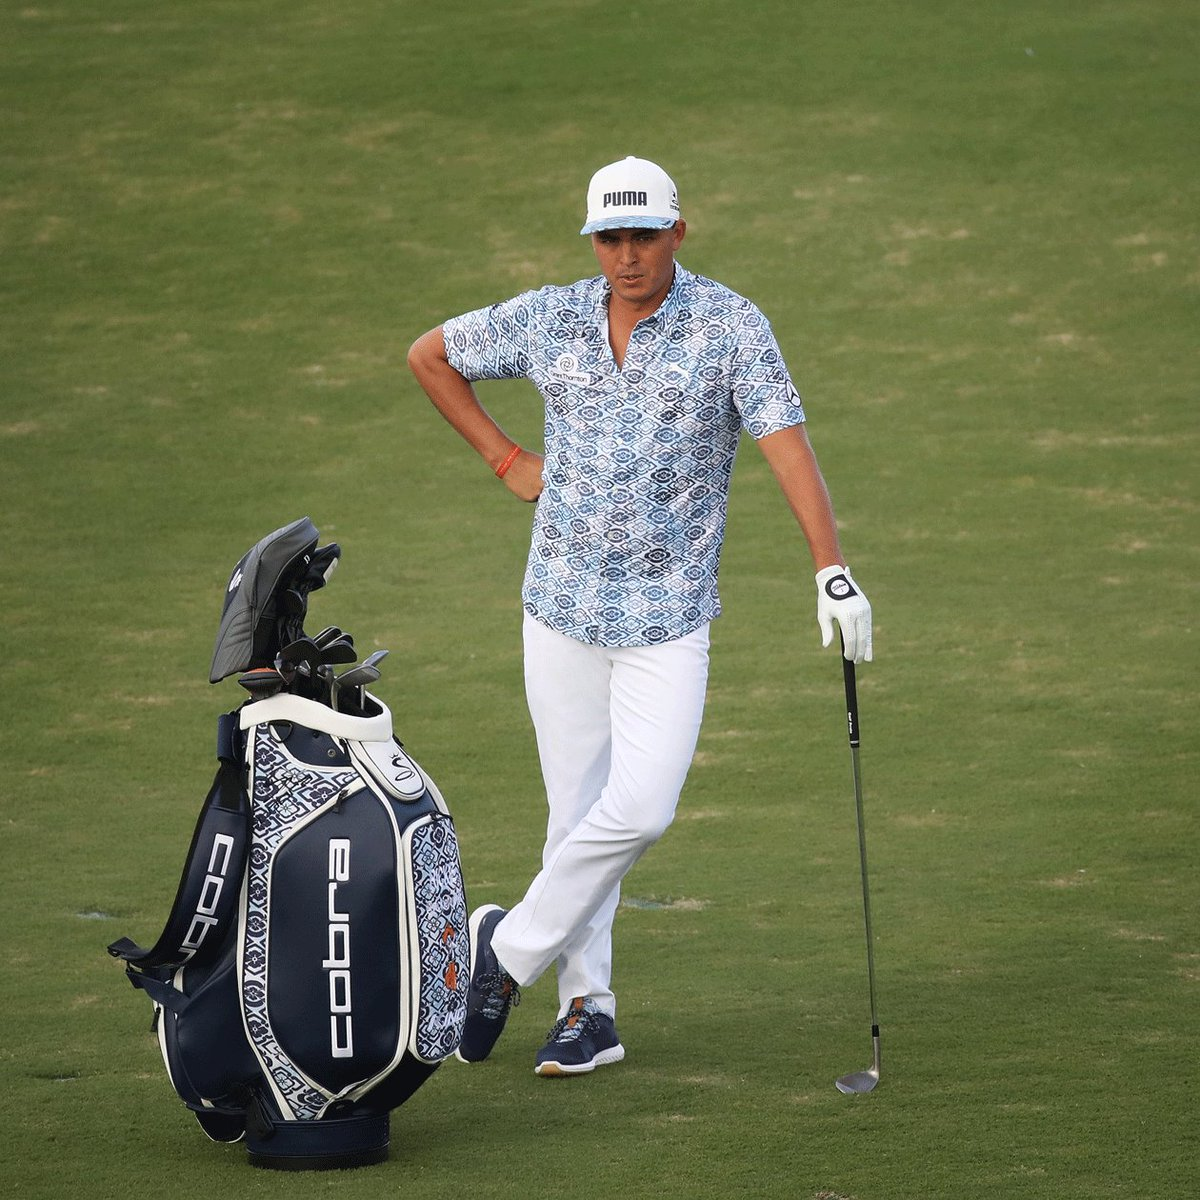 Puma Golf On Twitter Want To Win Rickiefowler S Bag Or A Full Aloha Outfit Head Over Instagram Give Us Your Best Haiku